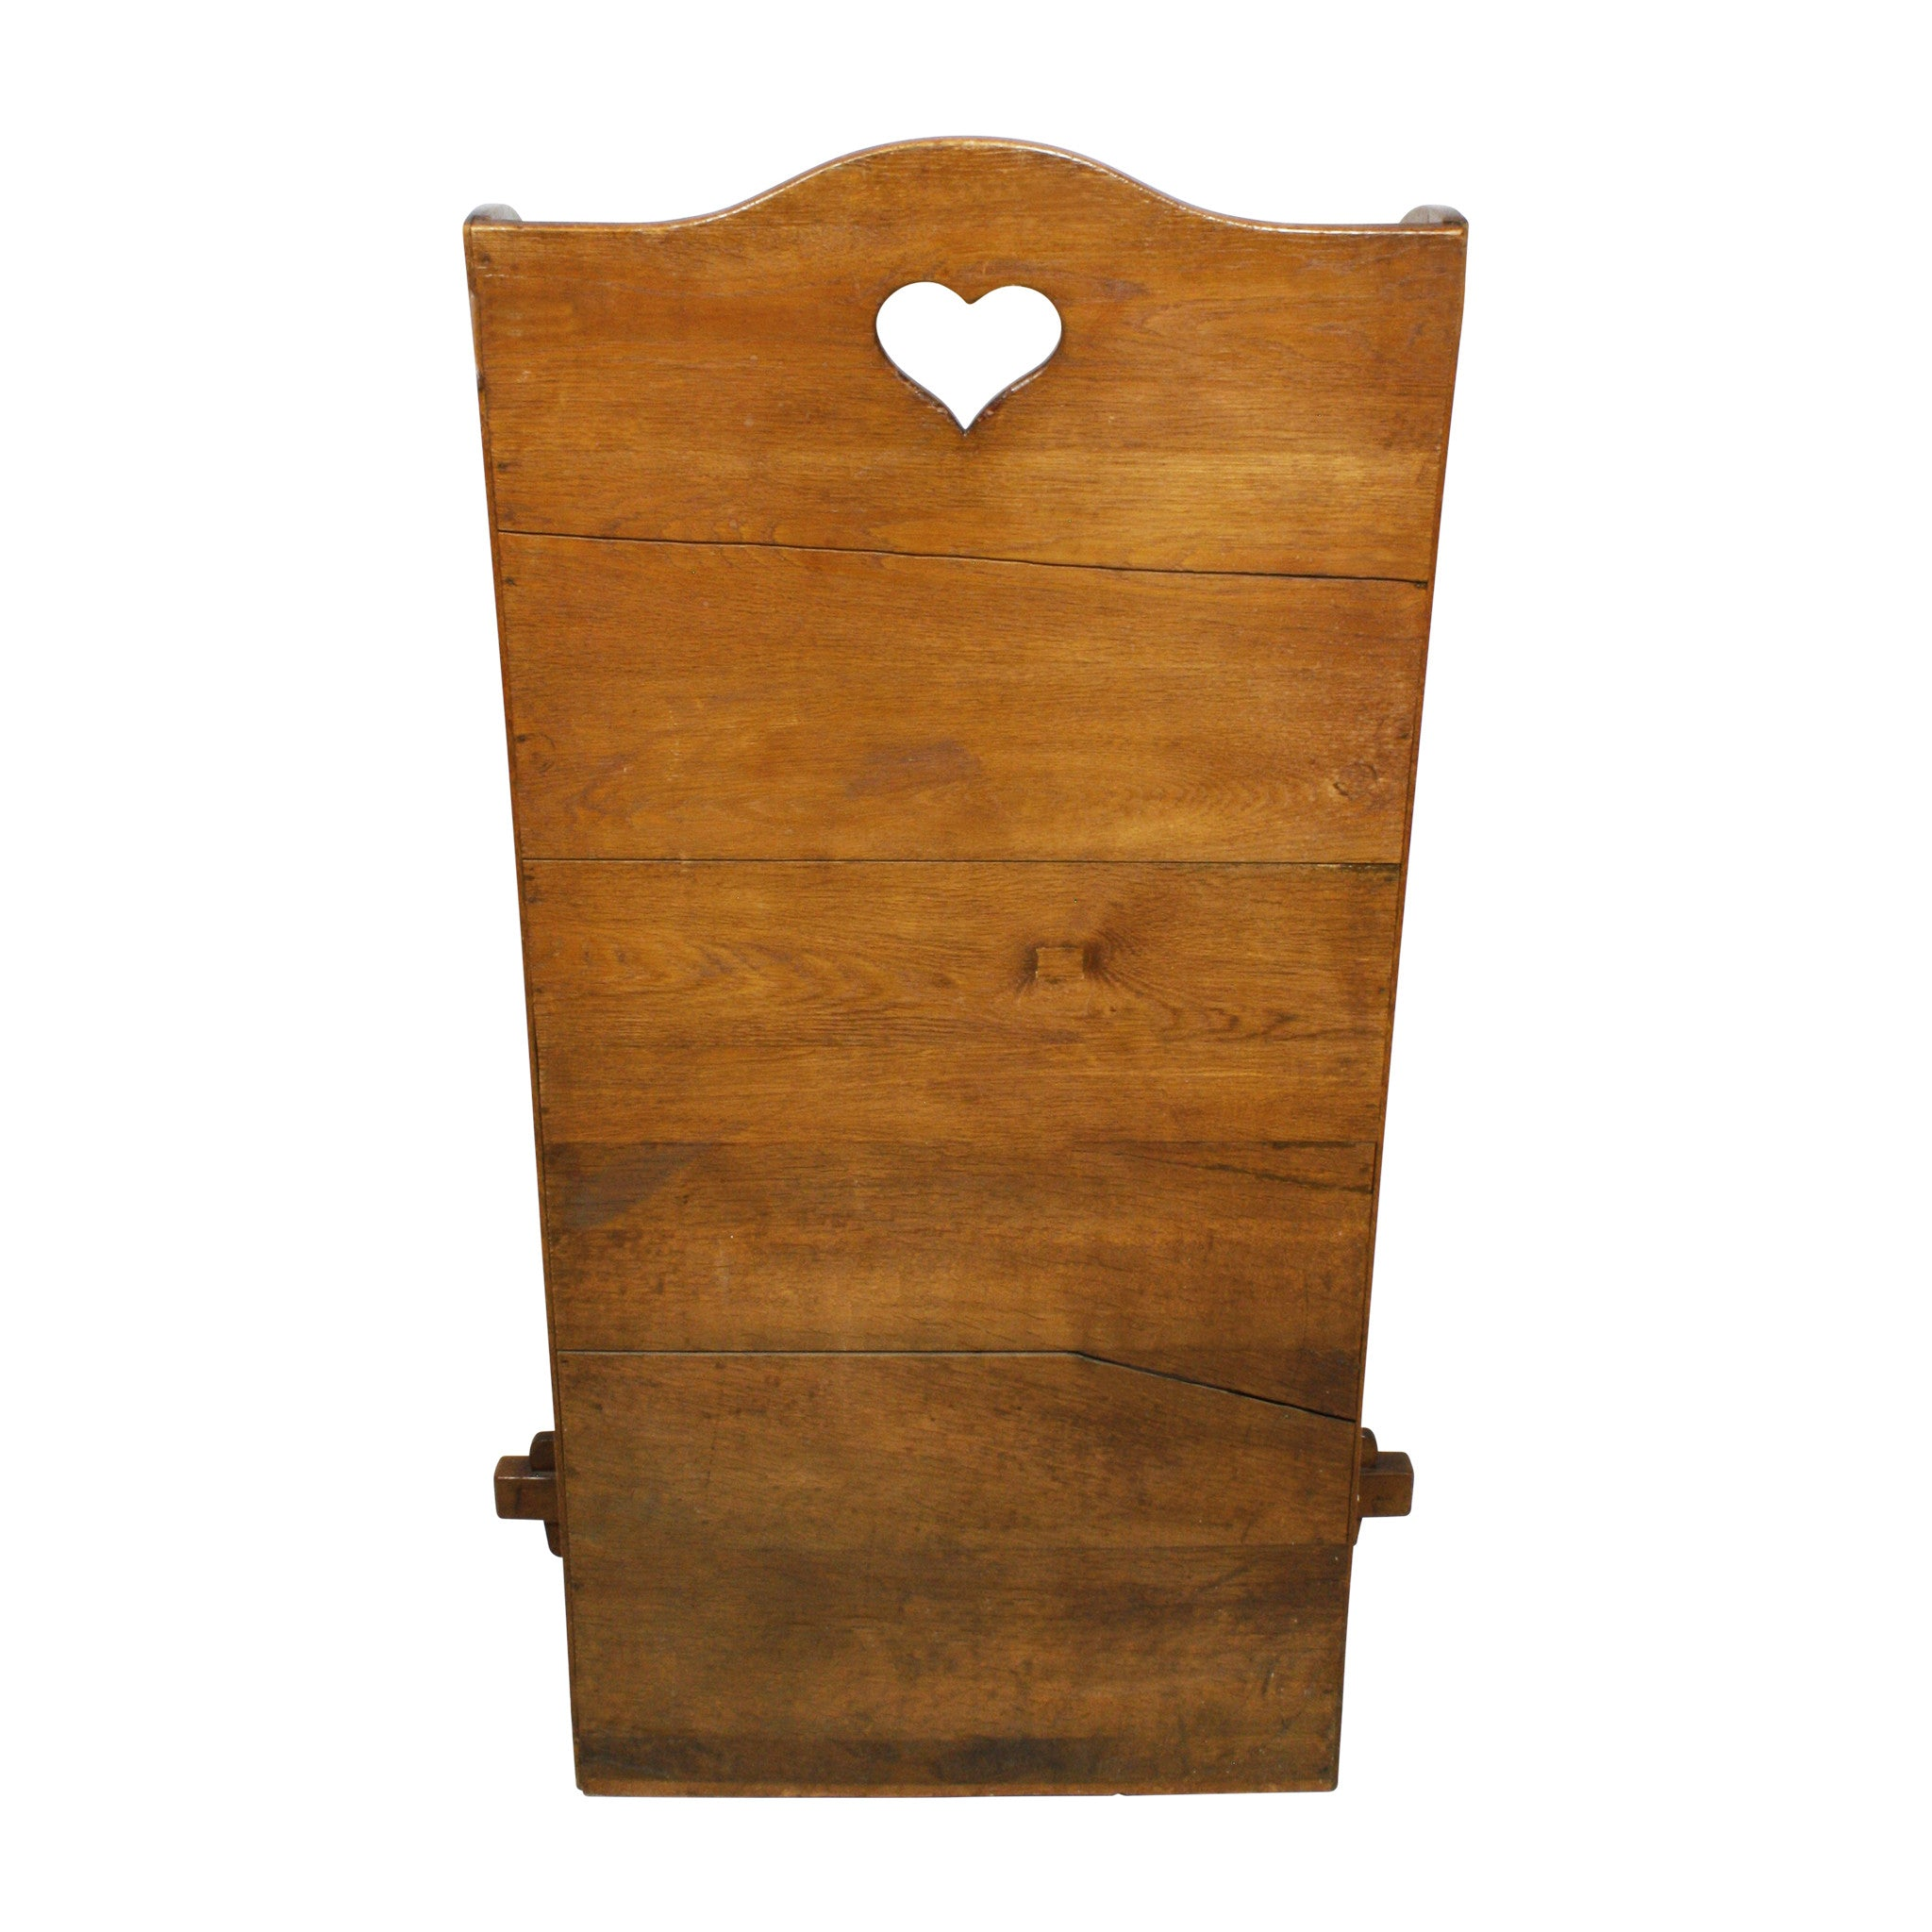 English Oak Highback Chair with Heart